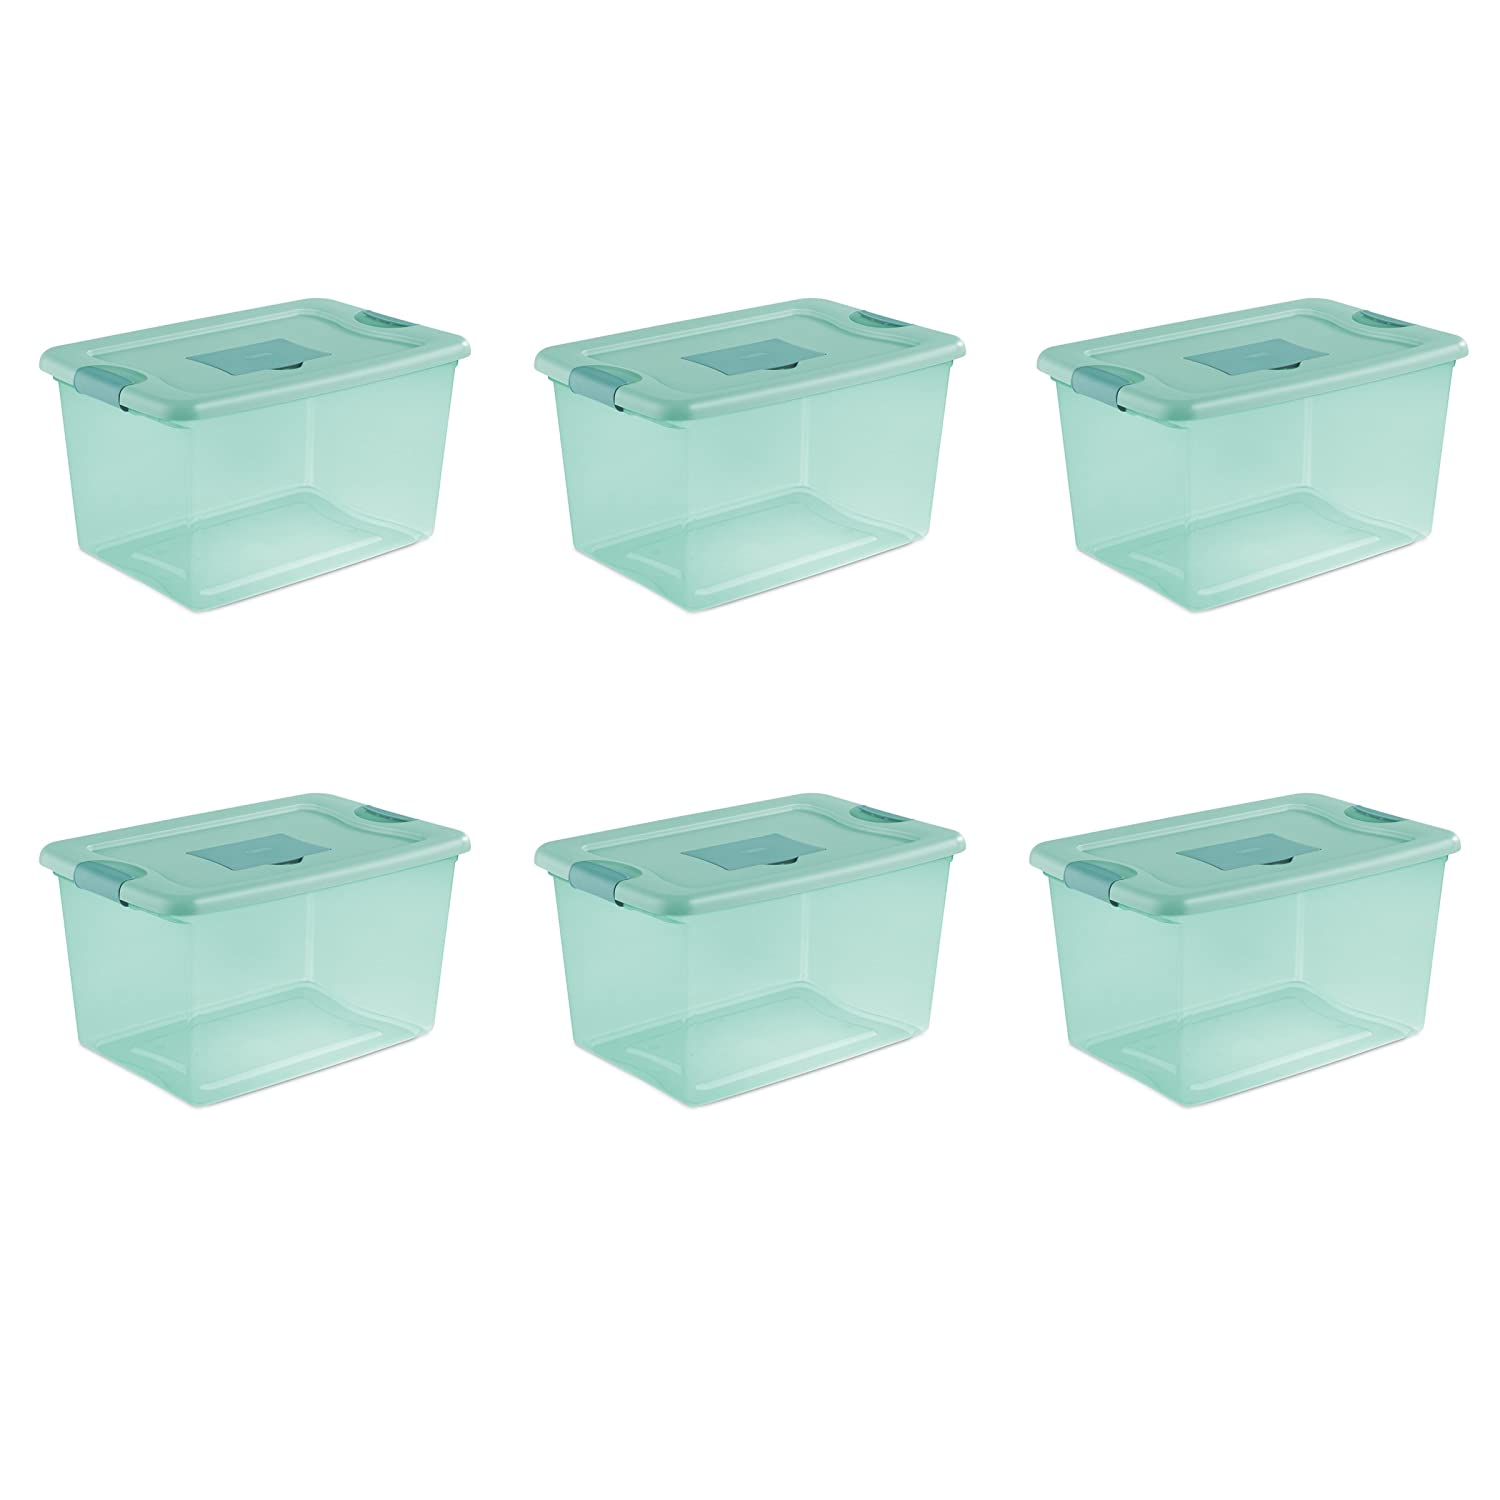 Sterilite 15077Y06 64 Qt, 61L Fresh Scent Box, Aqua Tent base with Aqua Chrome Lid & Teal Splash Latches, 6-Pack